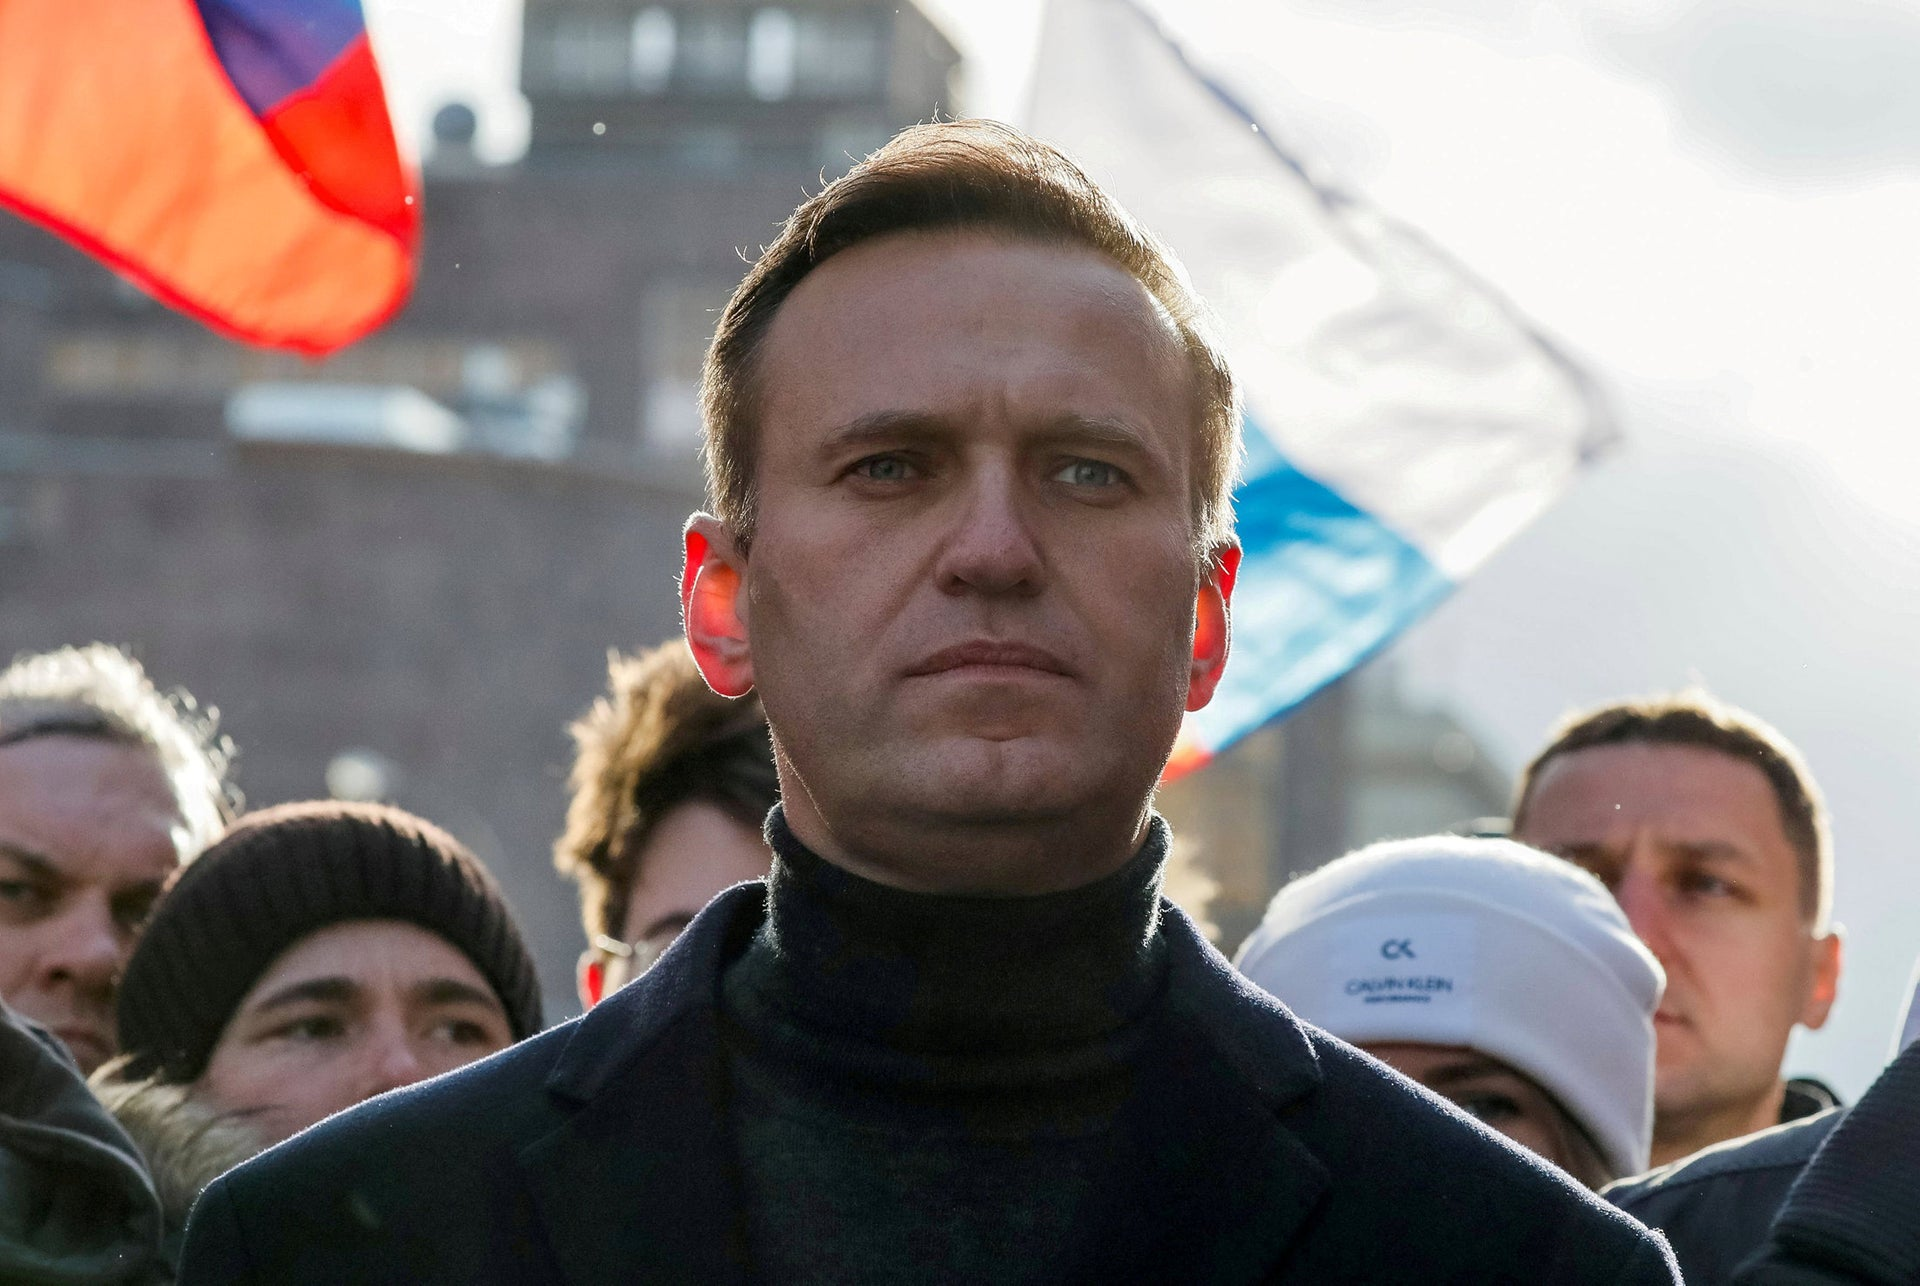 Alexei Navalny takes part in a rally to mark the 5th anniversary of opposition politician Boris Nemtsov's murder in Moscow, Russia February 29, 2020.